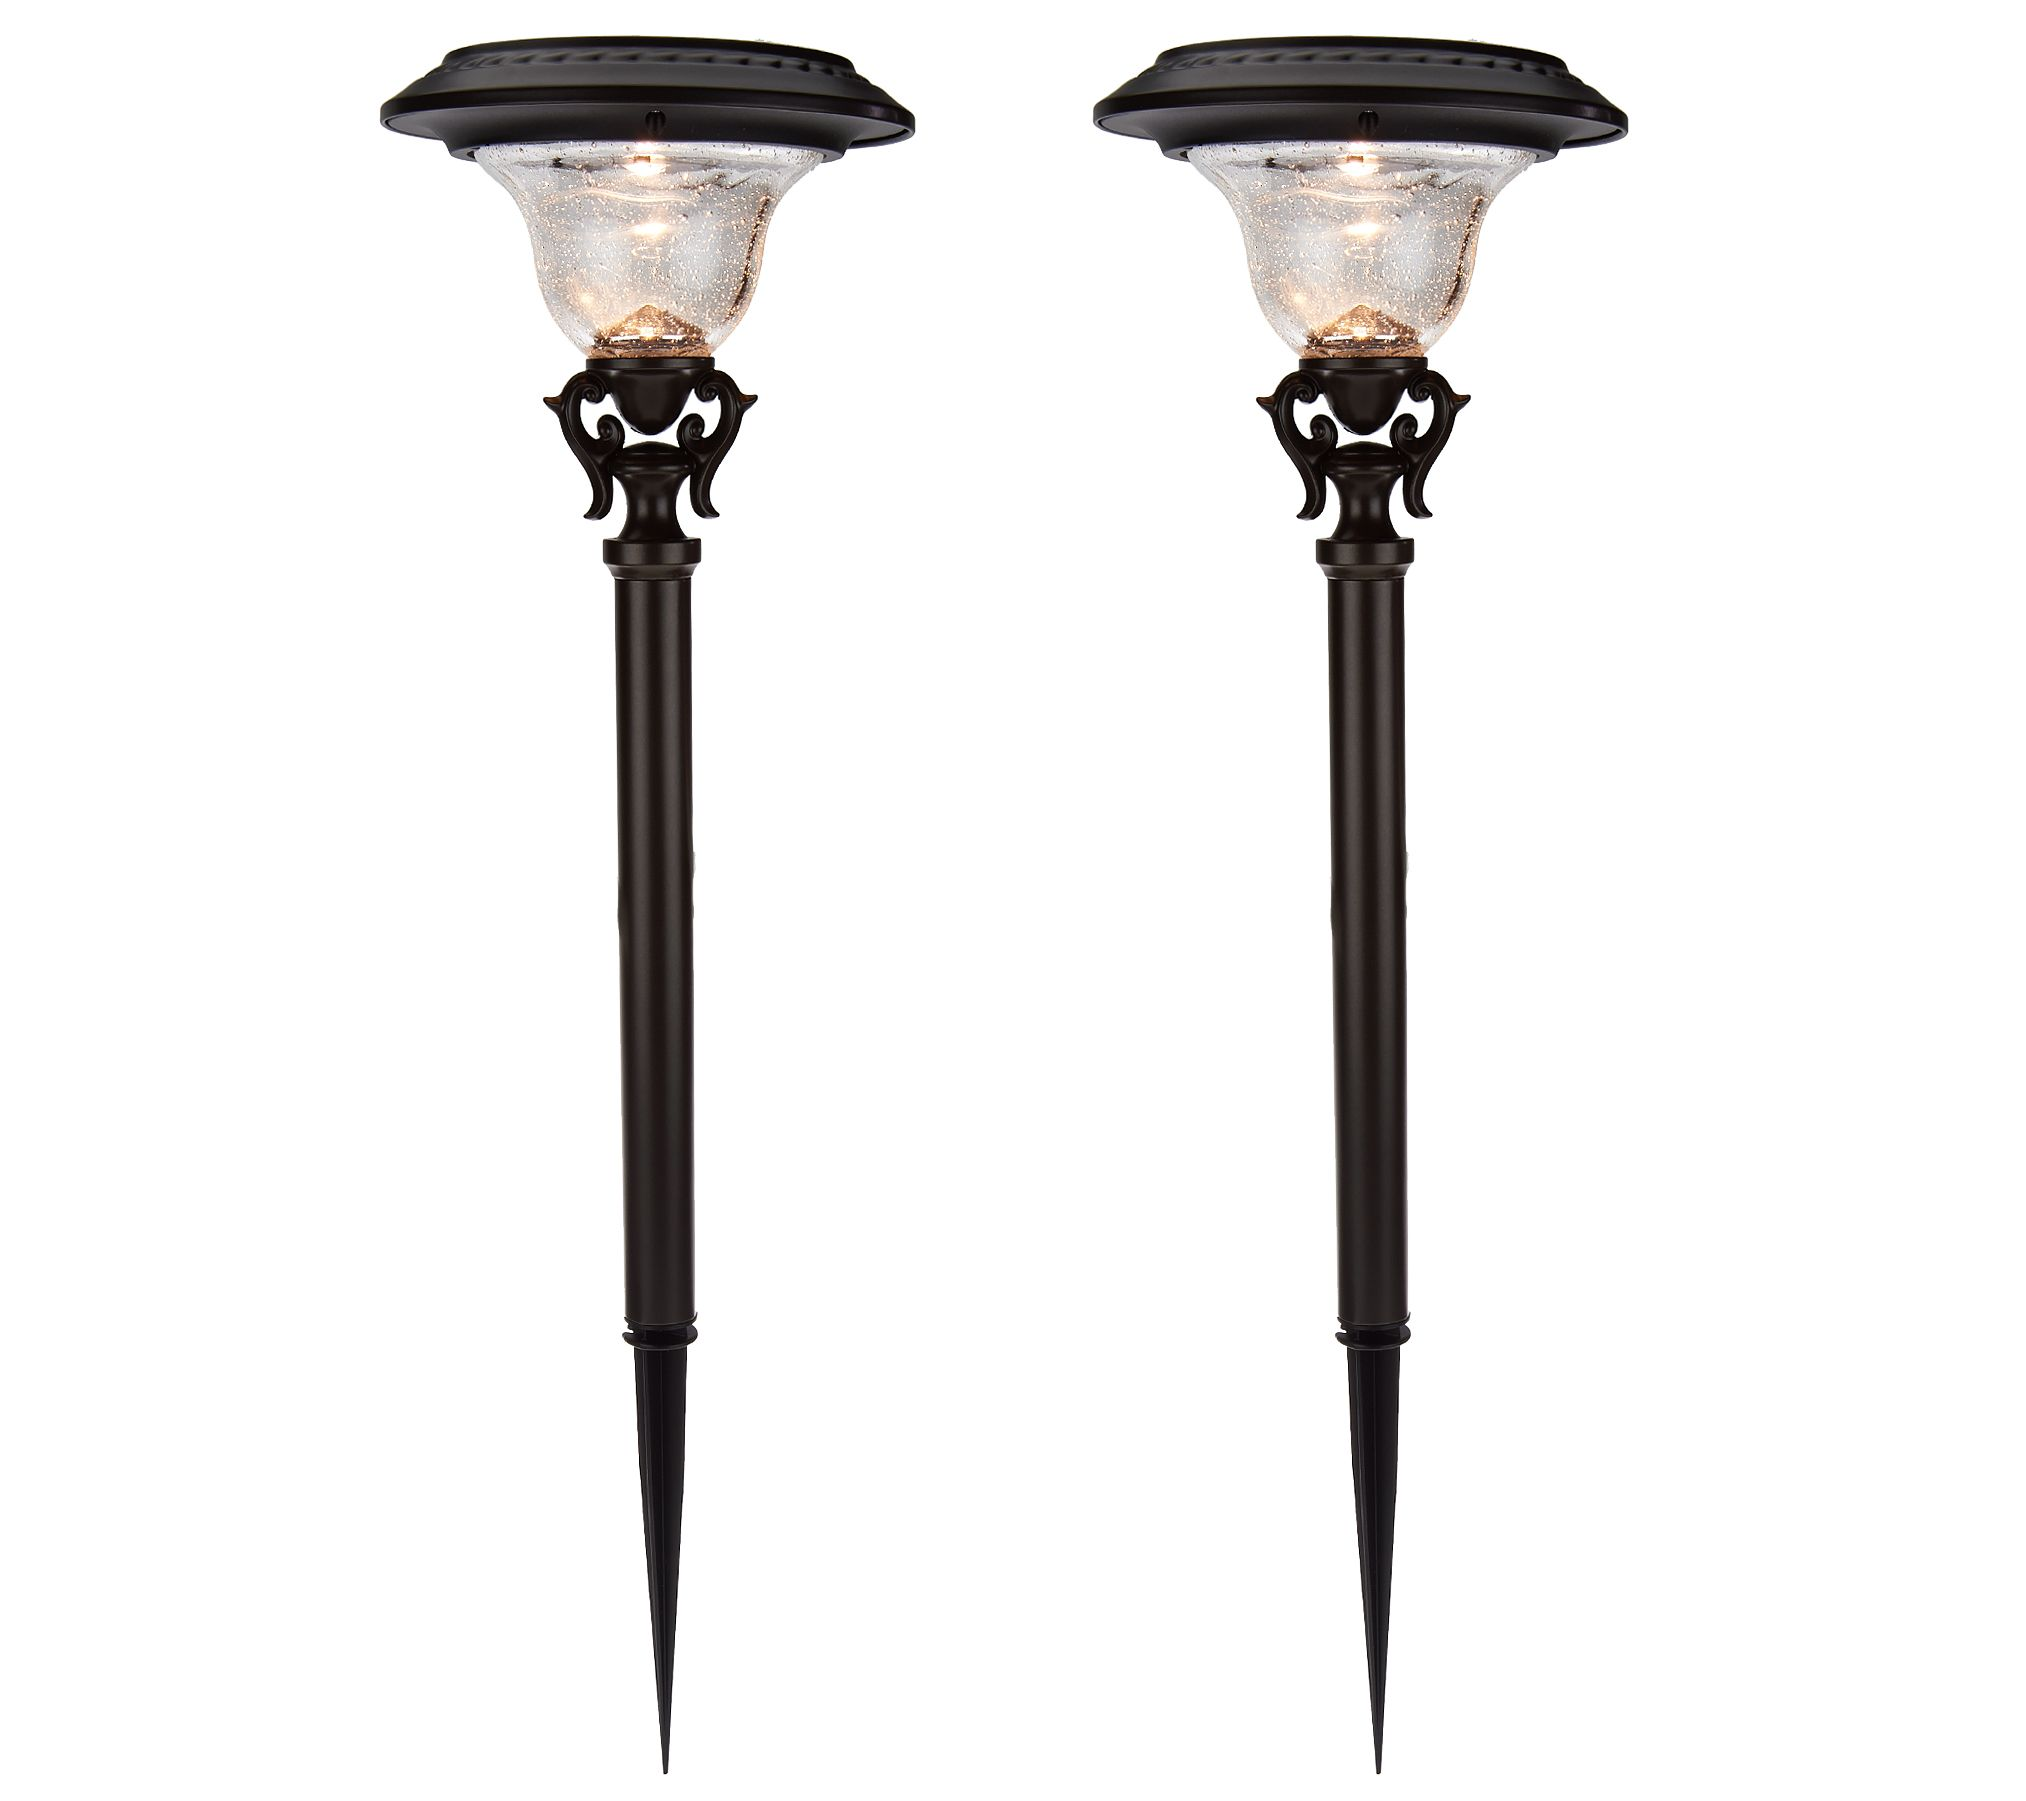 solar landscape lighting qvc duracell set of 2 decorative solar path light set page 1